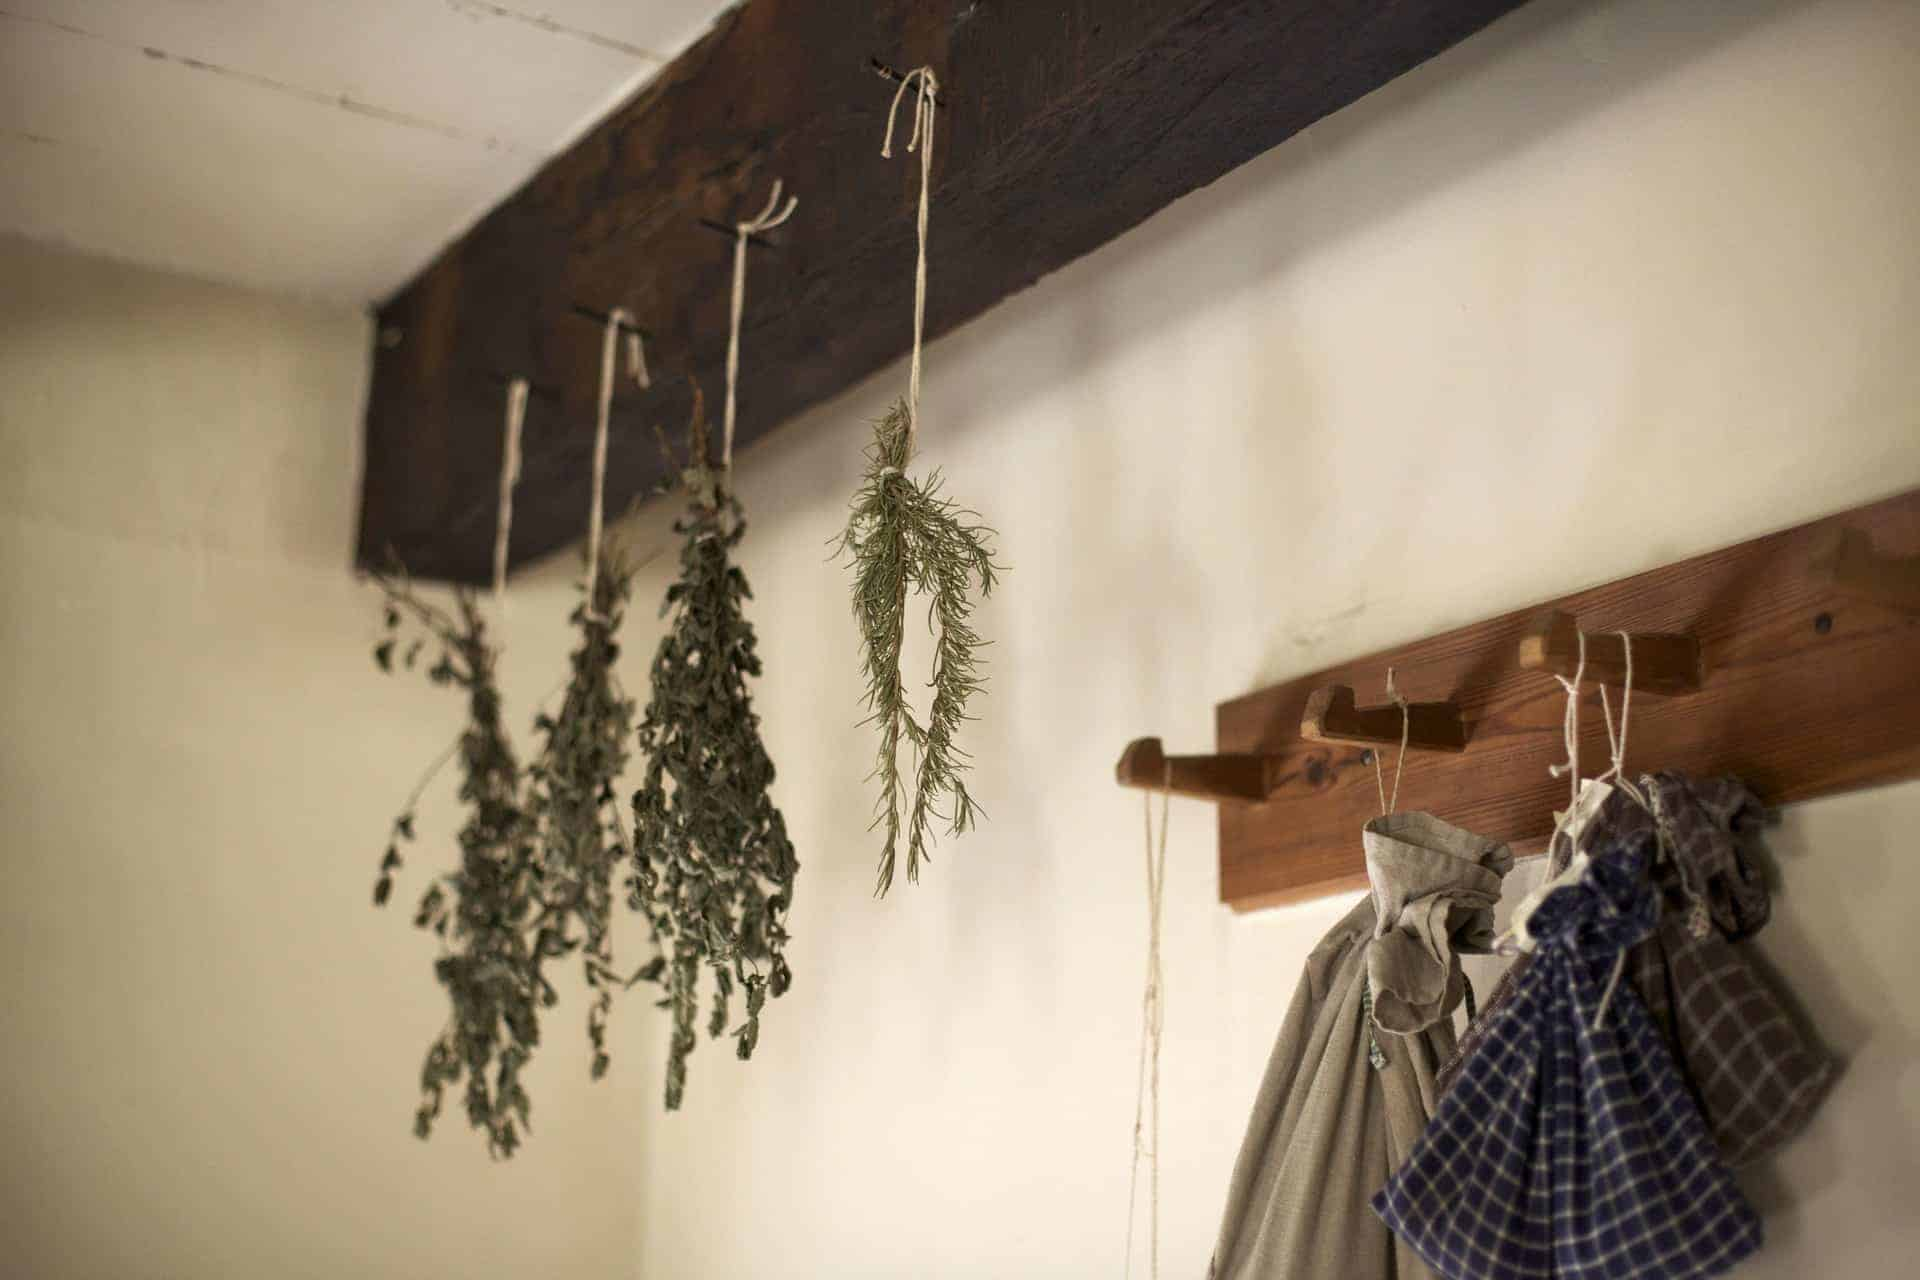 drying herbs hanging from ceiling